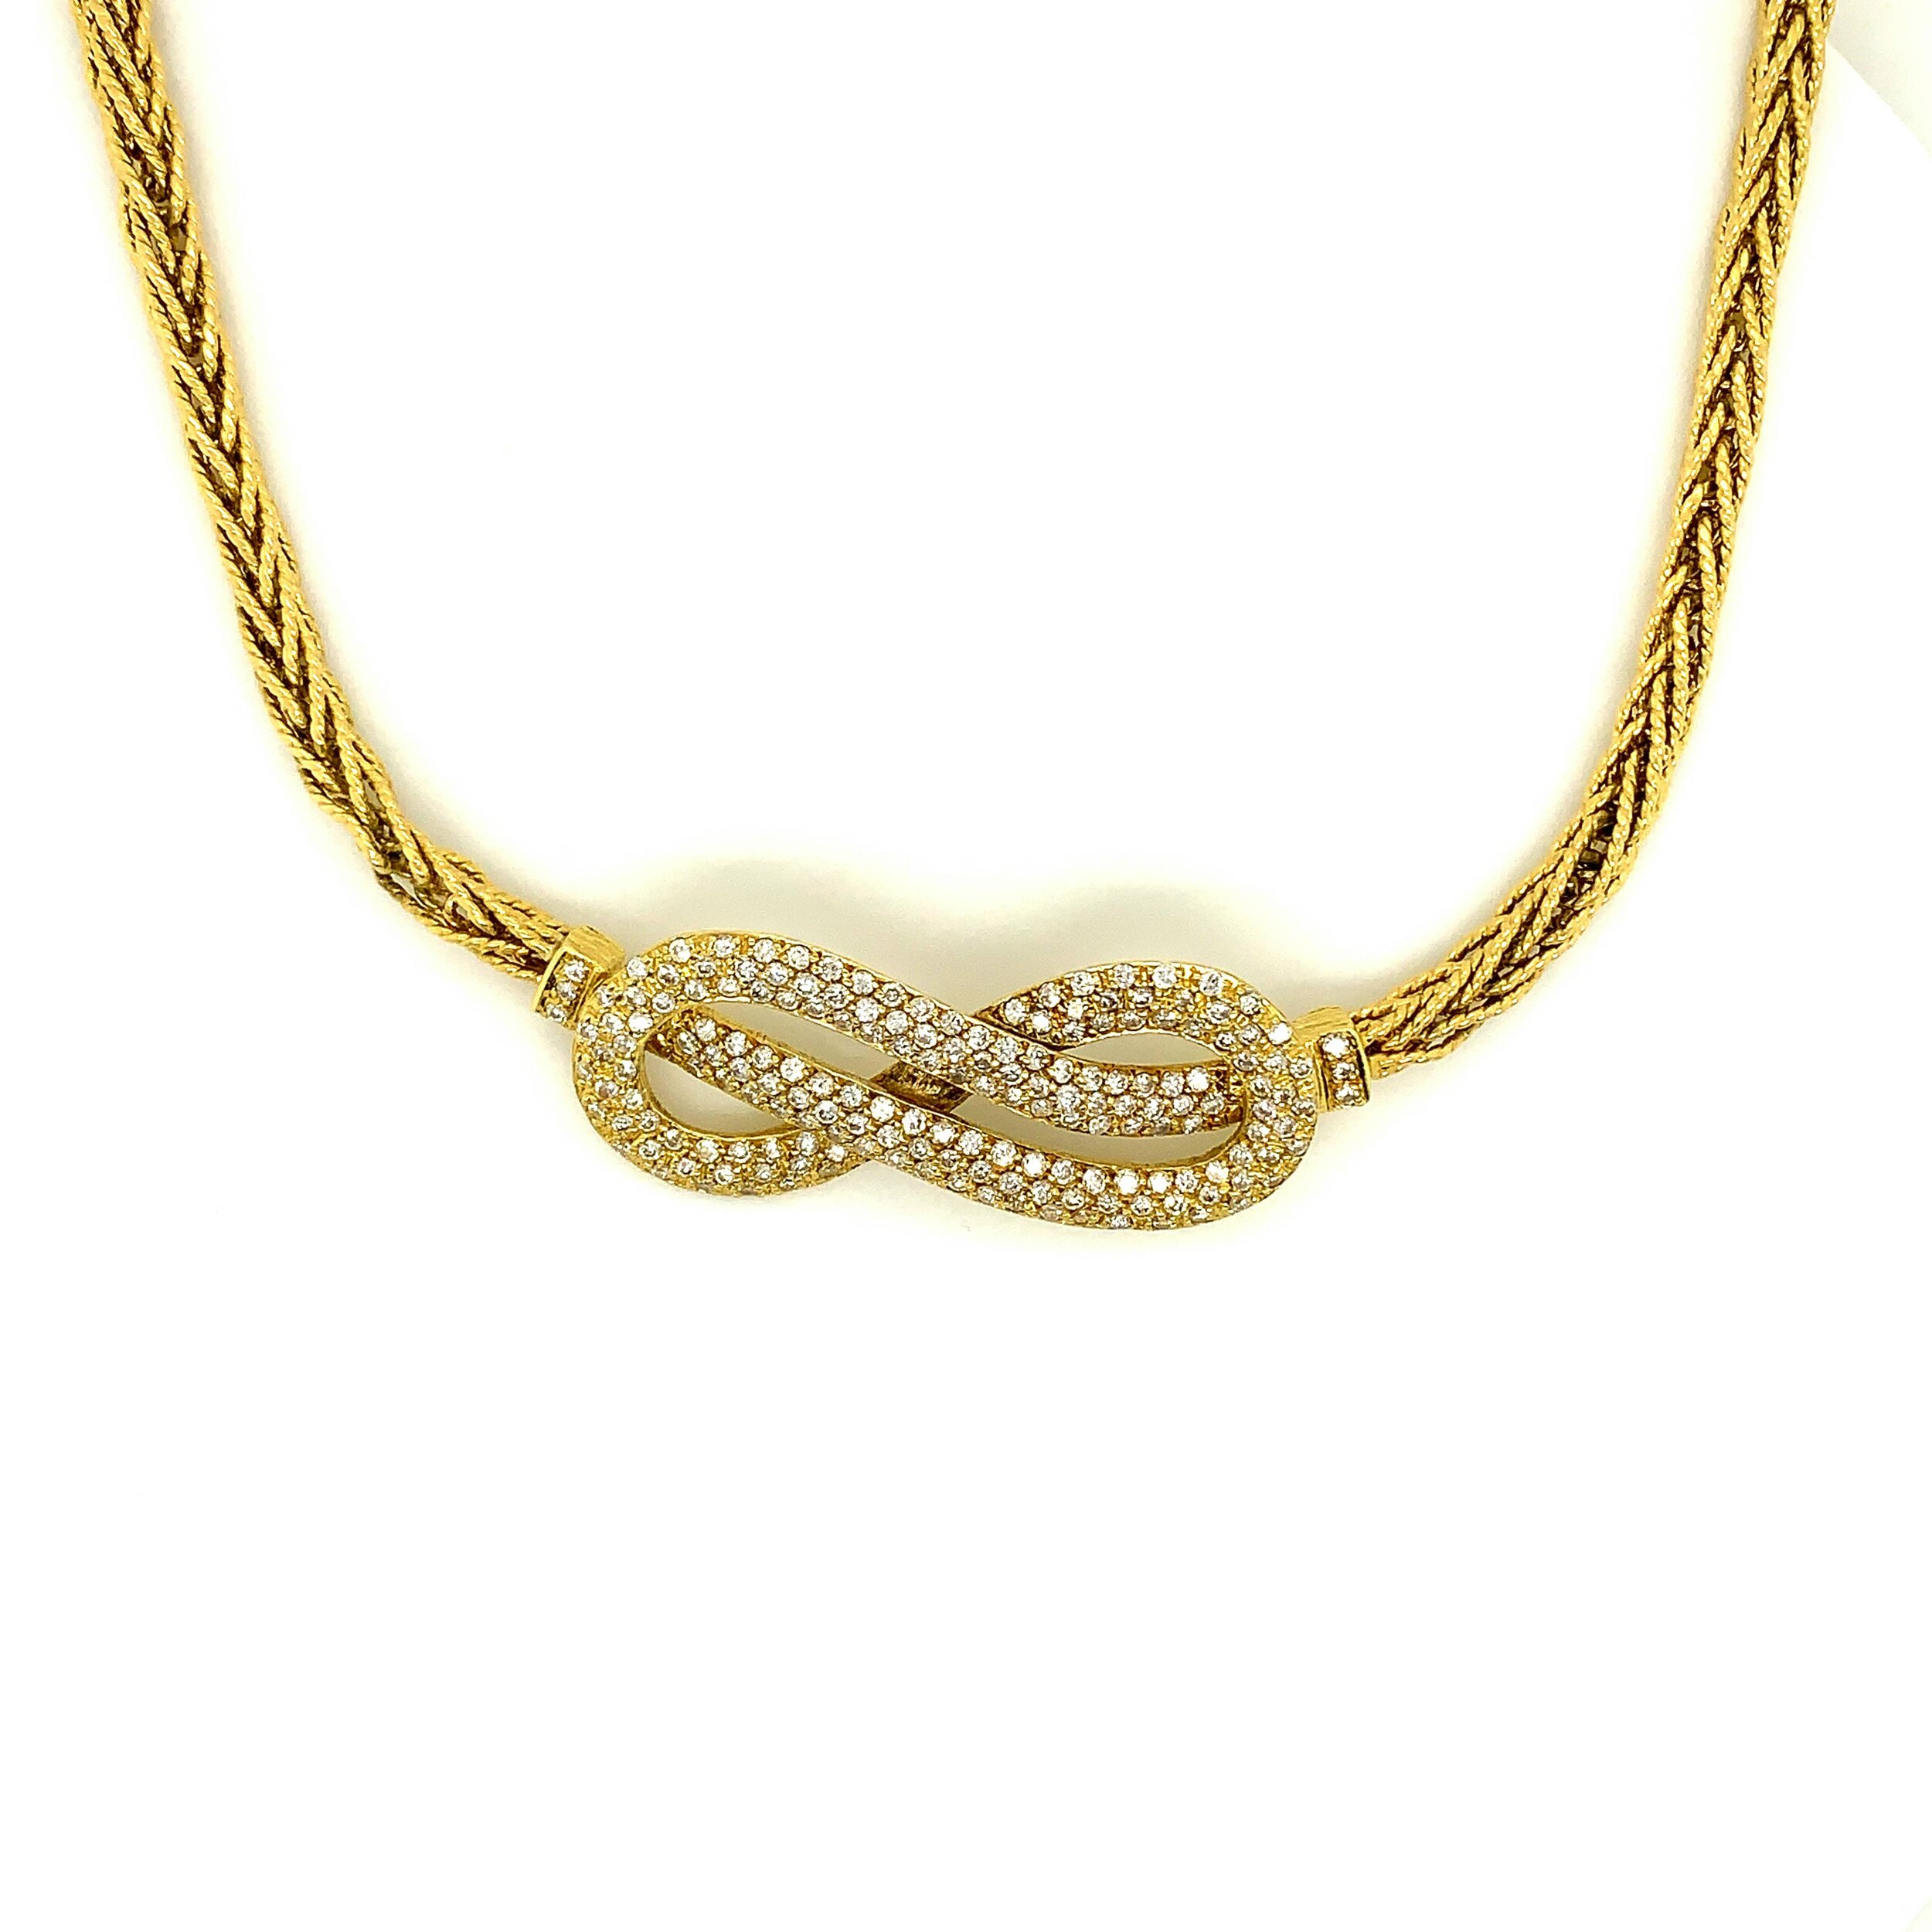 Gold Rope Necklace with 2.0ct Knot Center in 18 Karat Gold, Asprey   Est. US$ 3,500-5,000